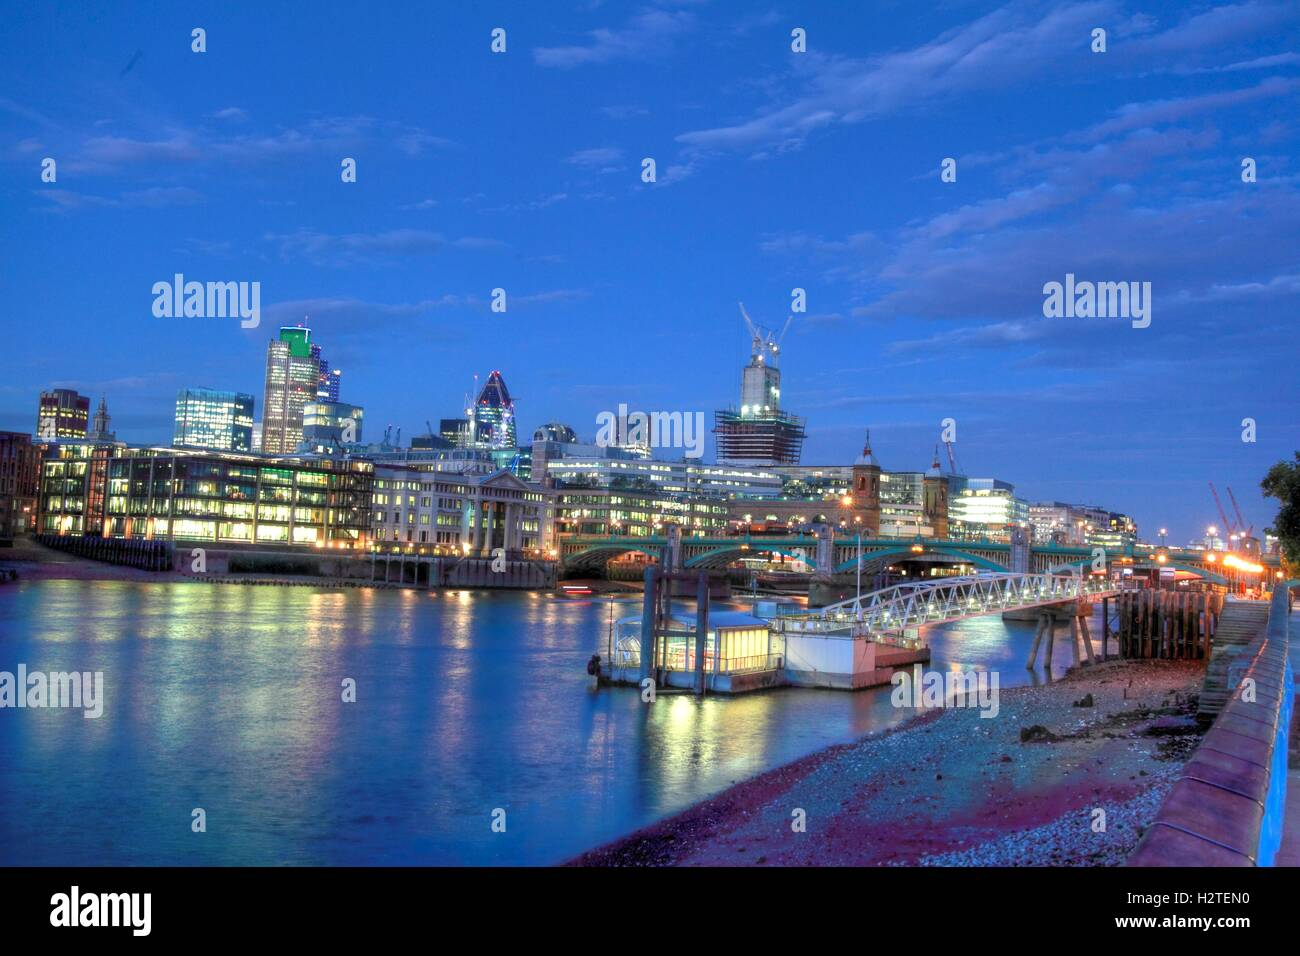 Capital,City,water,reflection,reflections,skyline,pano,blue,dusk,evening,morning,dawn,bridge,bridges,dock,dockside,riverside,side,wide,landscape,south,north,bank,travel,traveller,tourist,thamespanorama,architecture,boats,building,business,business,district,cityscape,lit,River Side,GoTonySmith,@HotpixUK,Tony,Smith,different,unique,Panorama,bridges,crossing,crossings,lights,icon,iconic,sky,line,skyline,walkway,visitor,Southwark,Riverboat,stage,Buy Pictures of,Buy Images Of,Images of,Stock Images,Tony Smith,Photo of,River Thames,City Of London,River Thames Panorama,London City